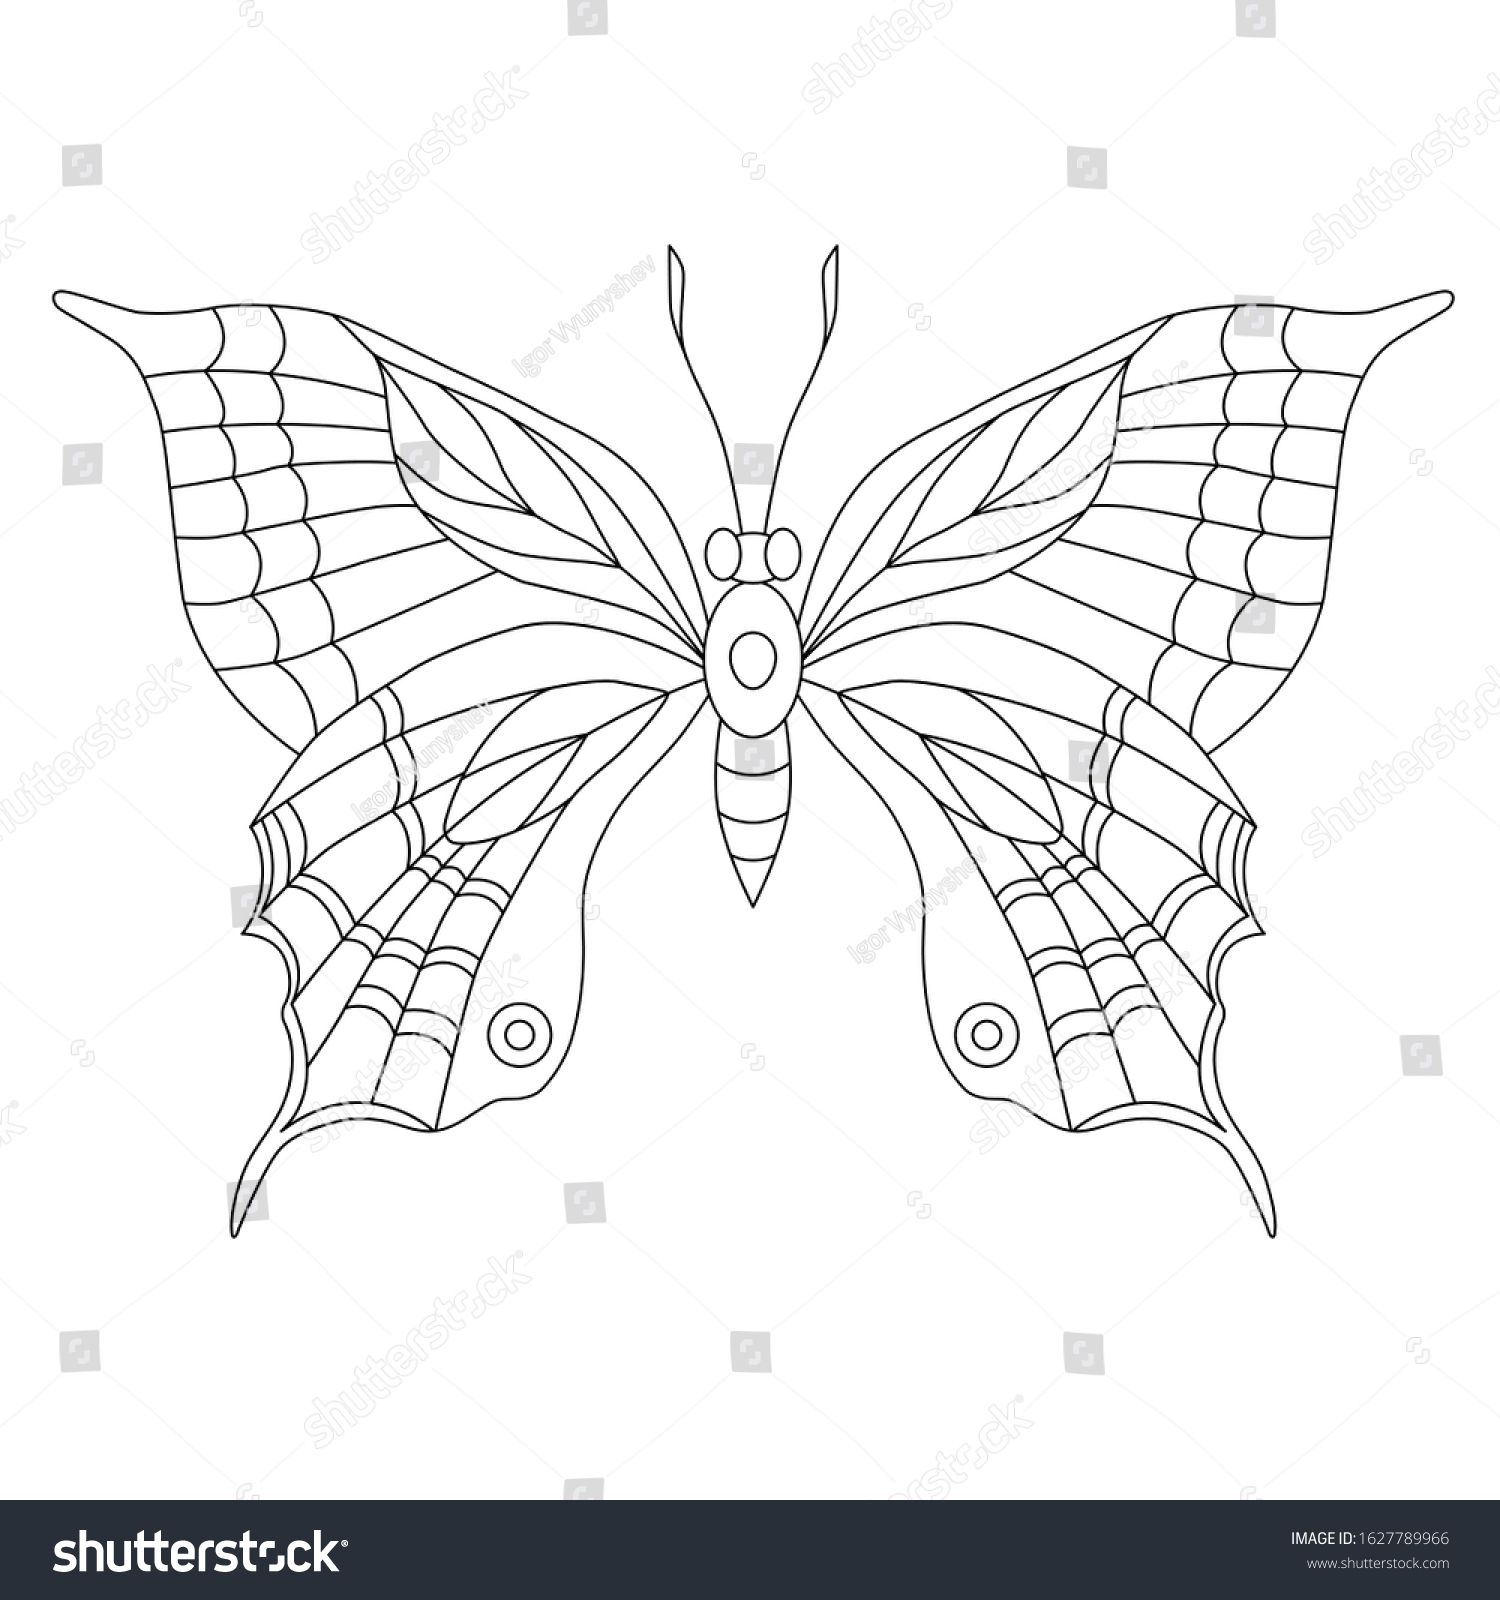 Butterfly With Ornament On The Wings Coloring Page Black Contour Illustration N Ad Aff Wings Co Coloring Pages Butterfly Coloring Page Stock Illustration [ 1600 x 1500 Pixel ]